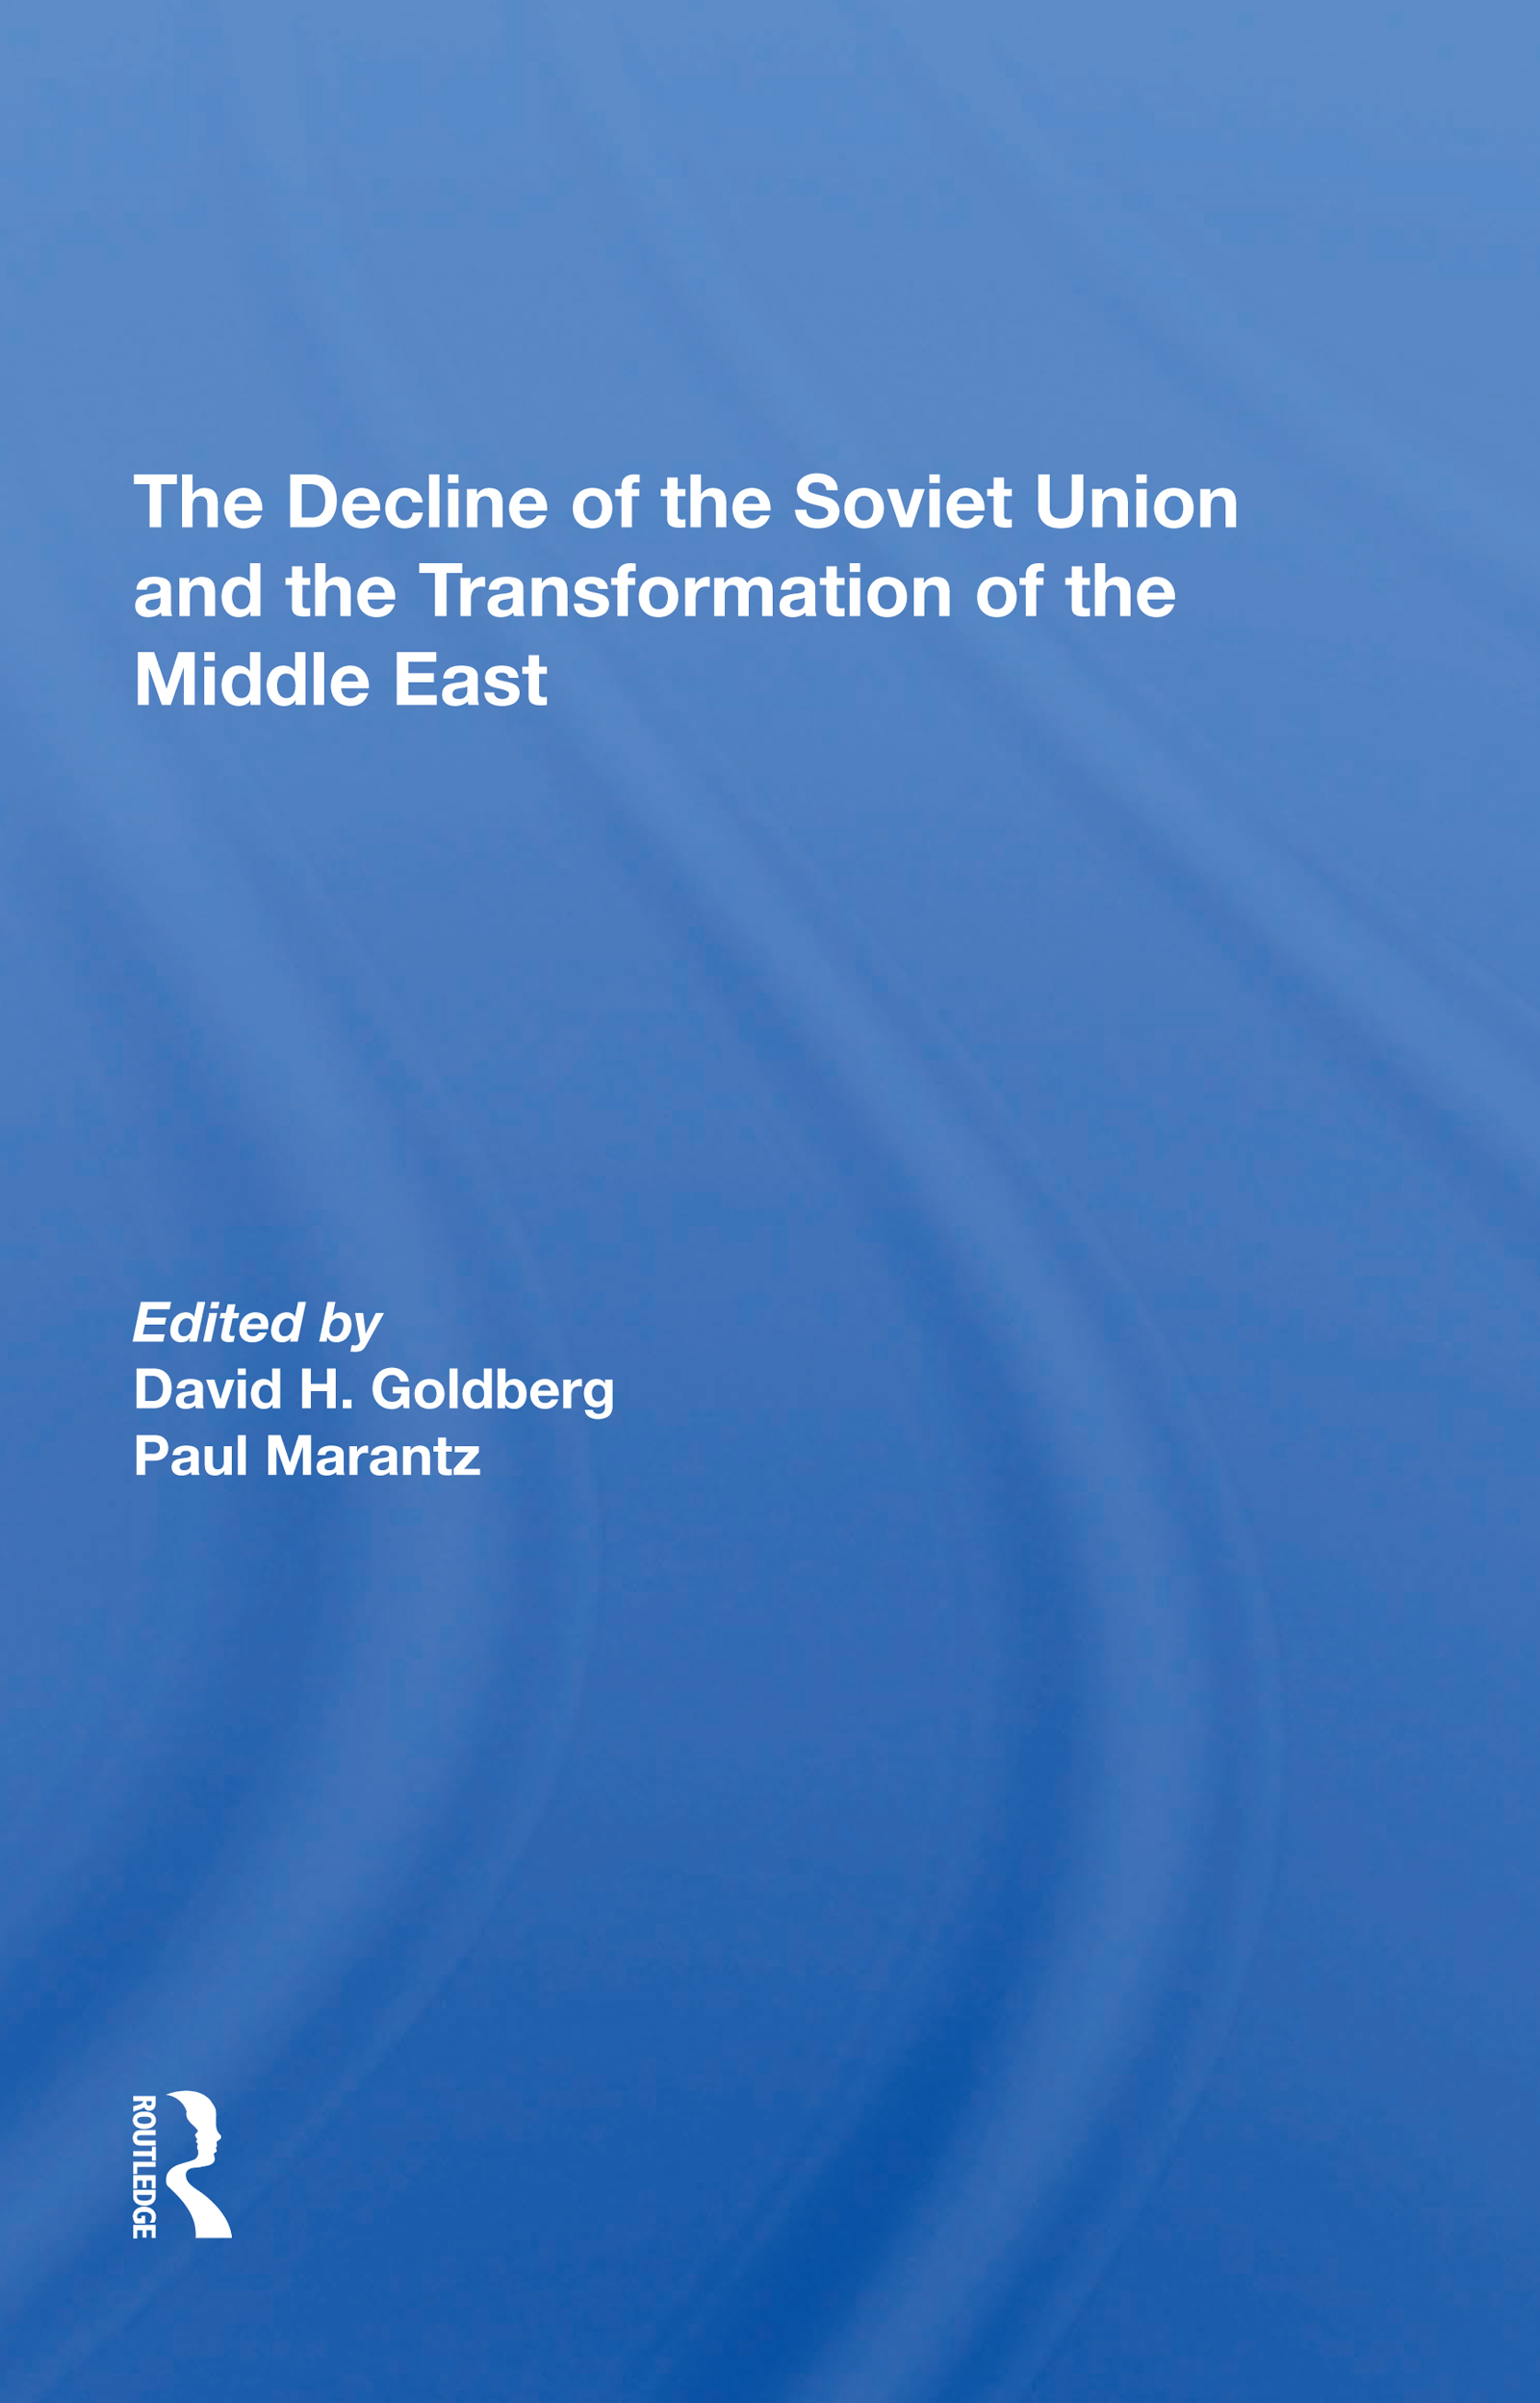 The Decline Of The Soviet Union And The Transformation Of The Middle East